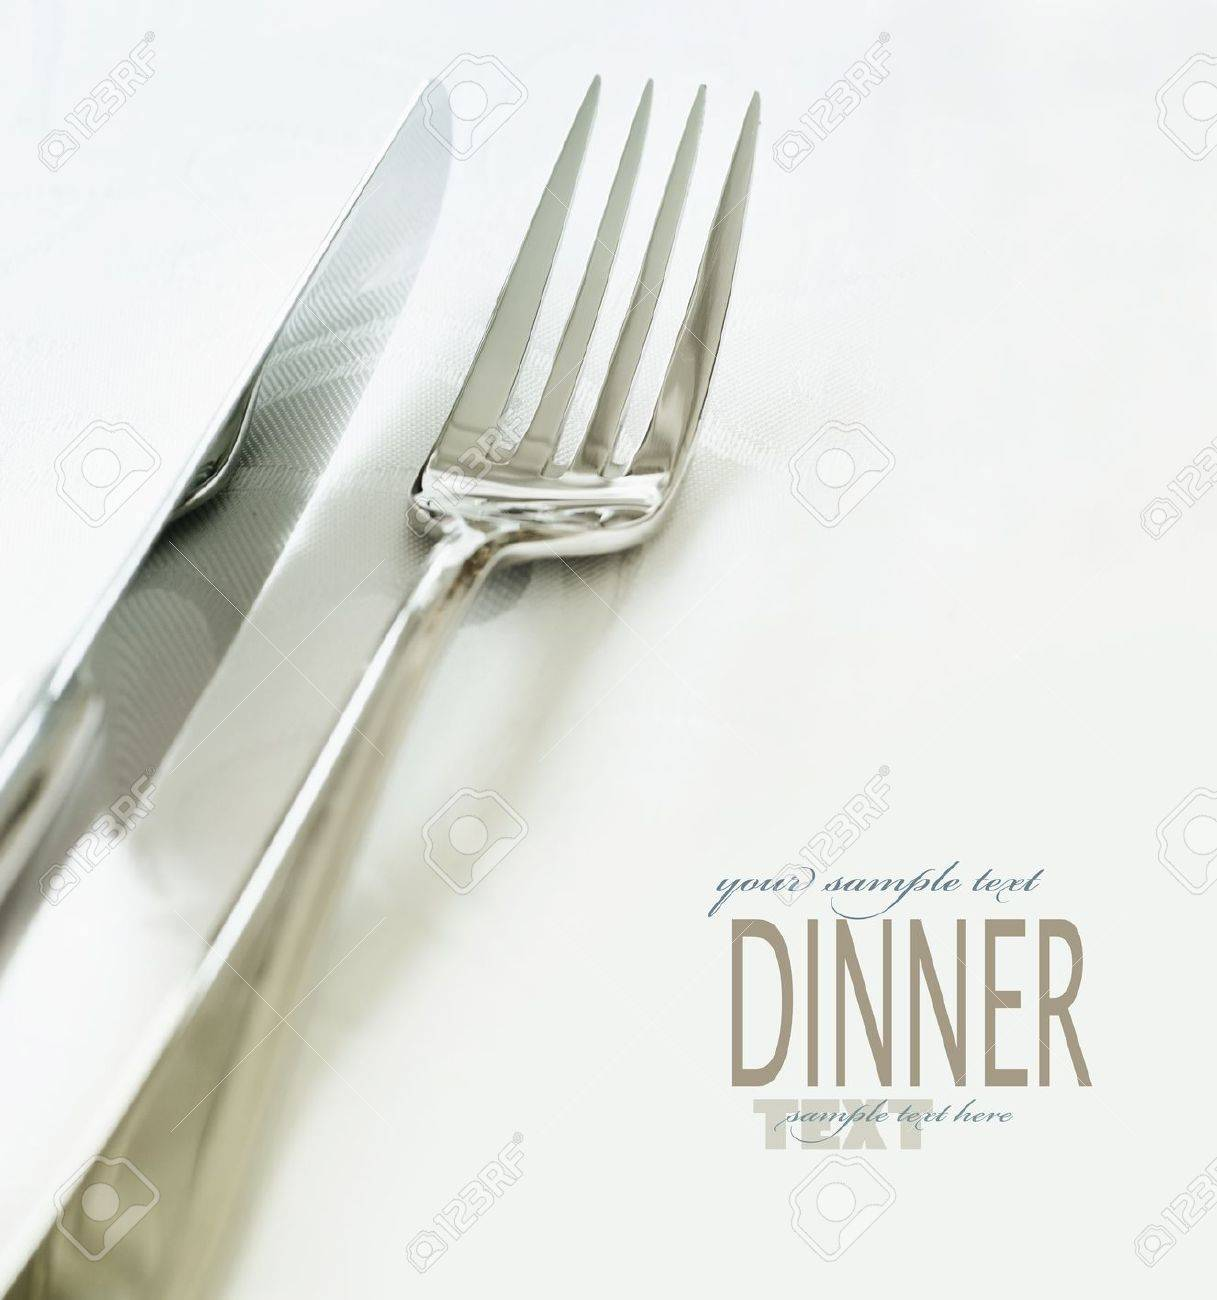 Elegant dinner table setting - Wedding Or Dinner Table Place Setting Fork And Knife And Glass